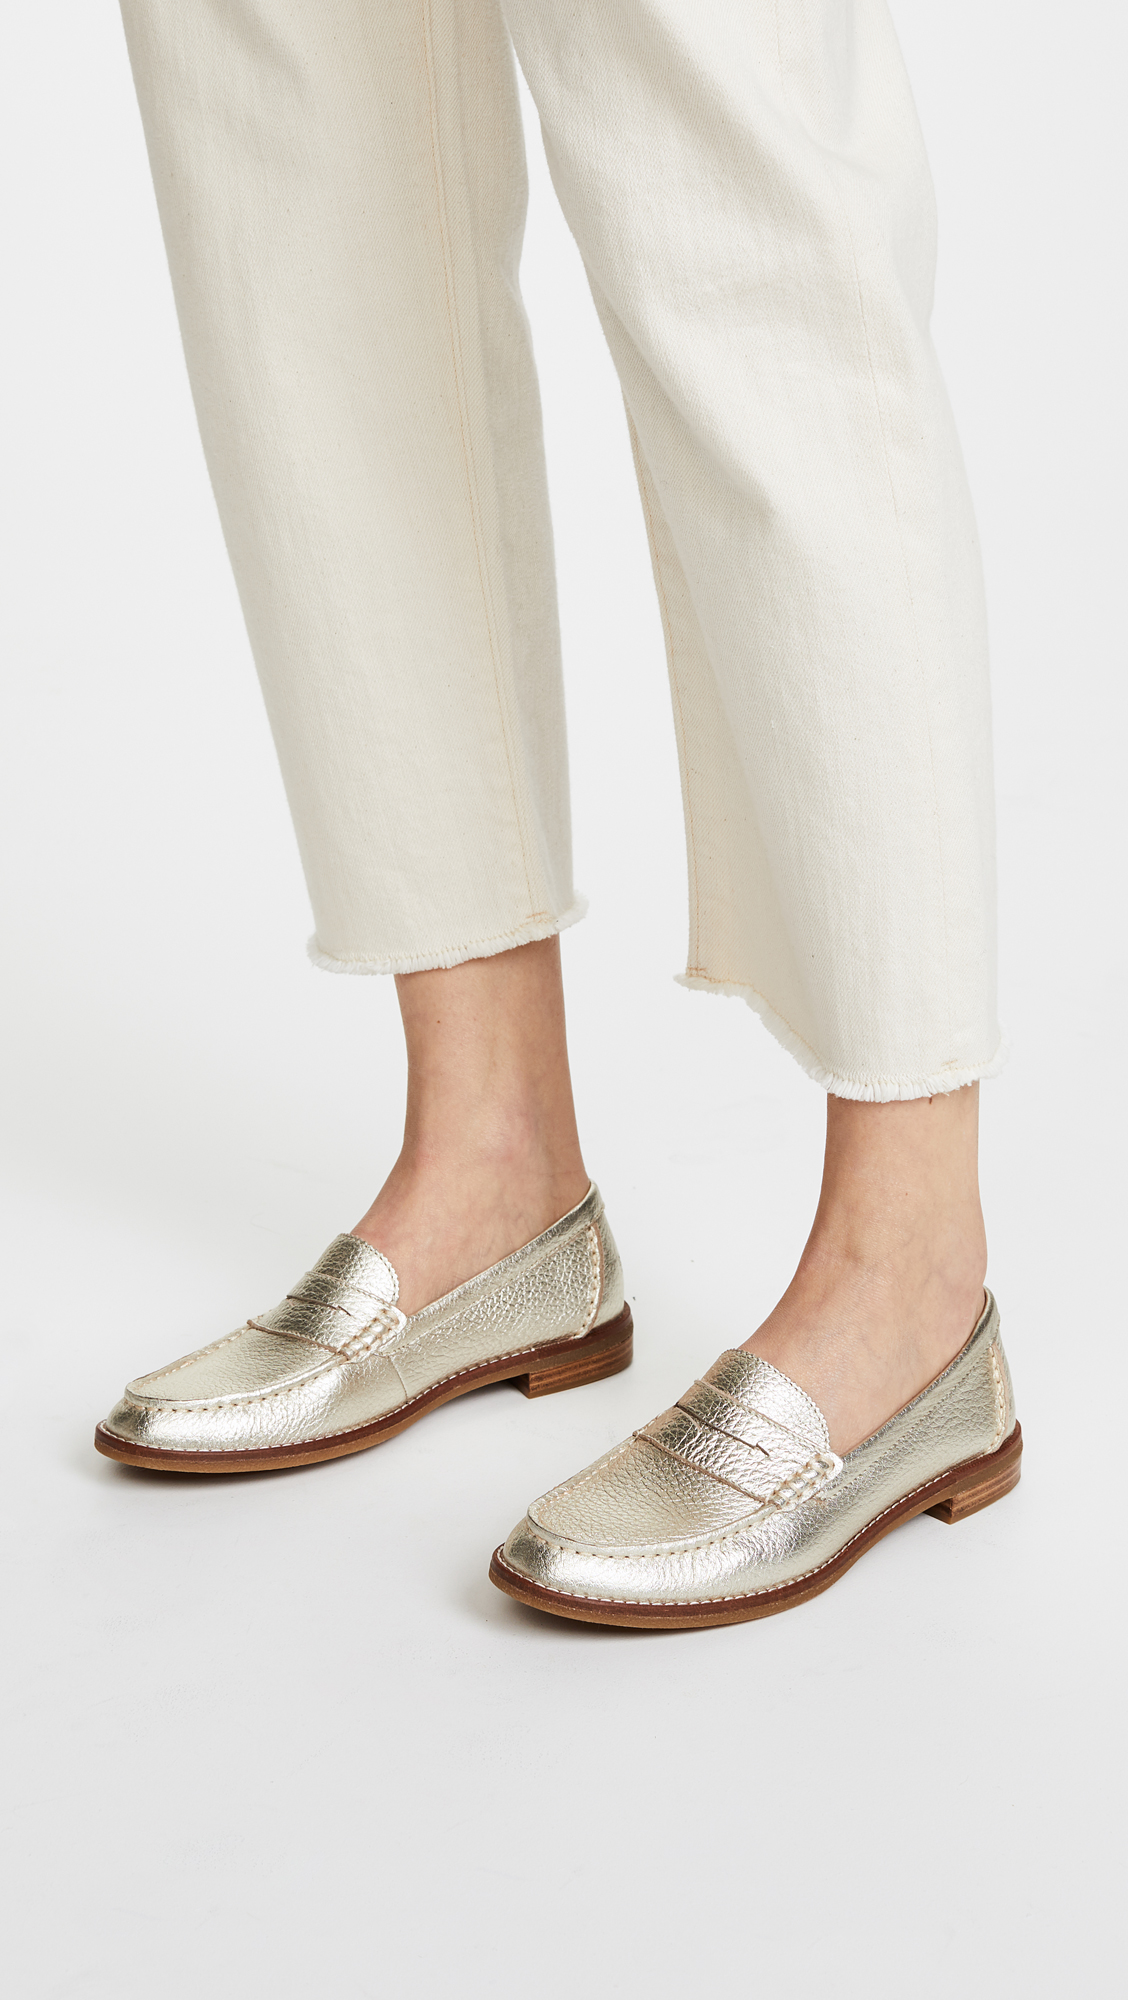 0590ccde4f8 Sperry Seaport Penny Loafers